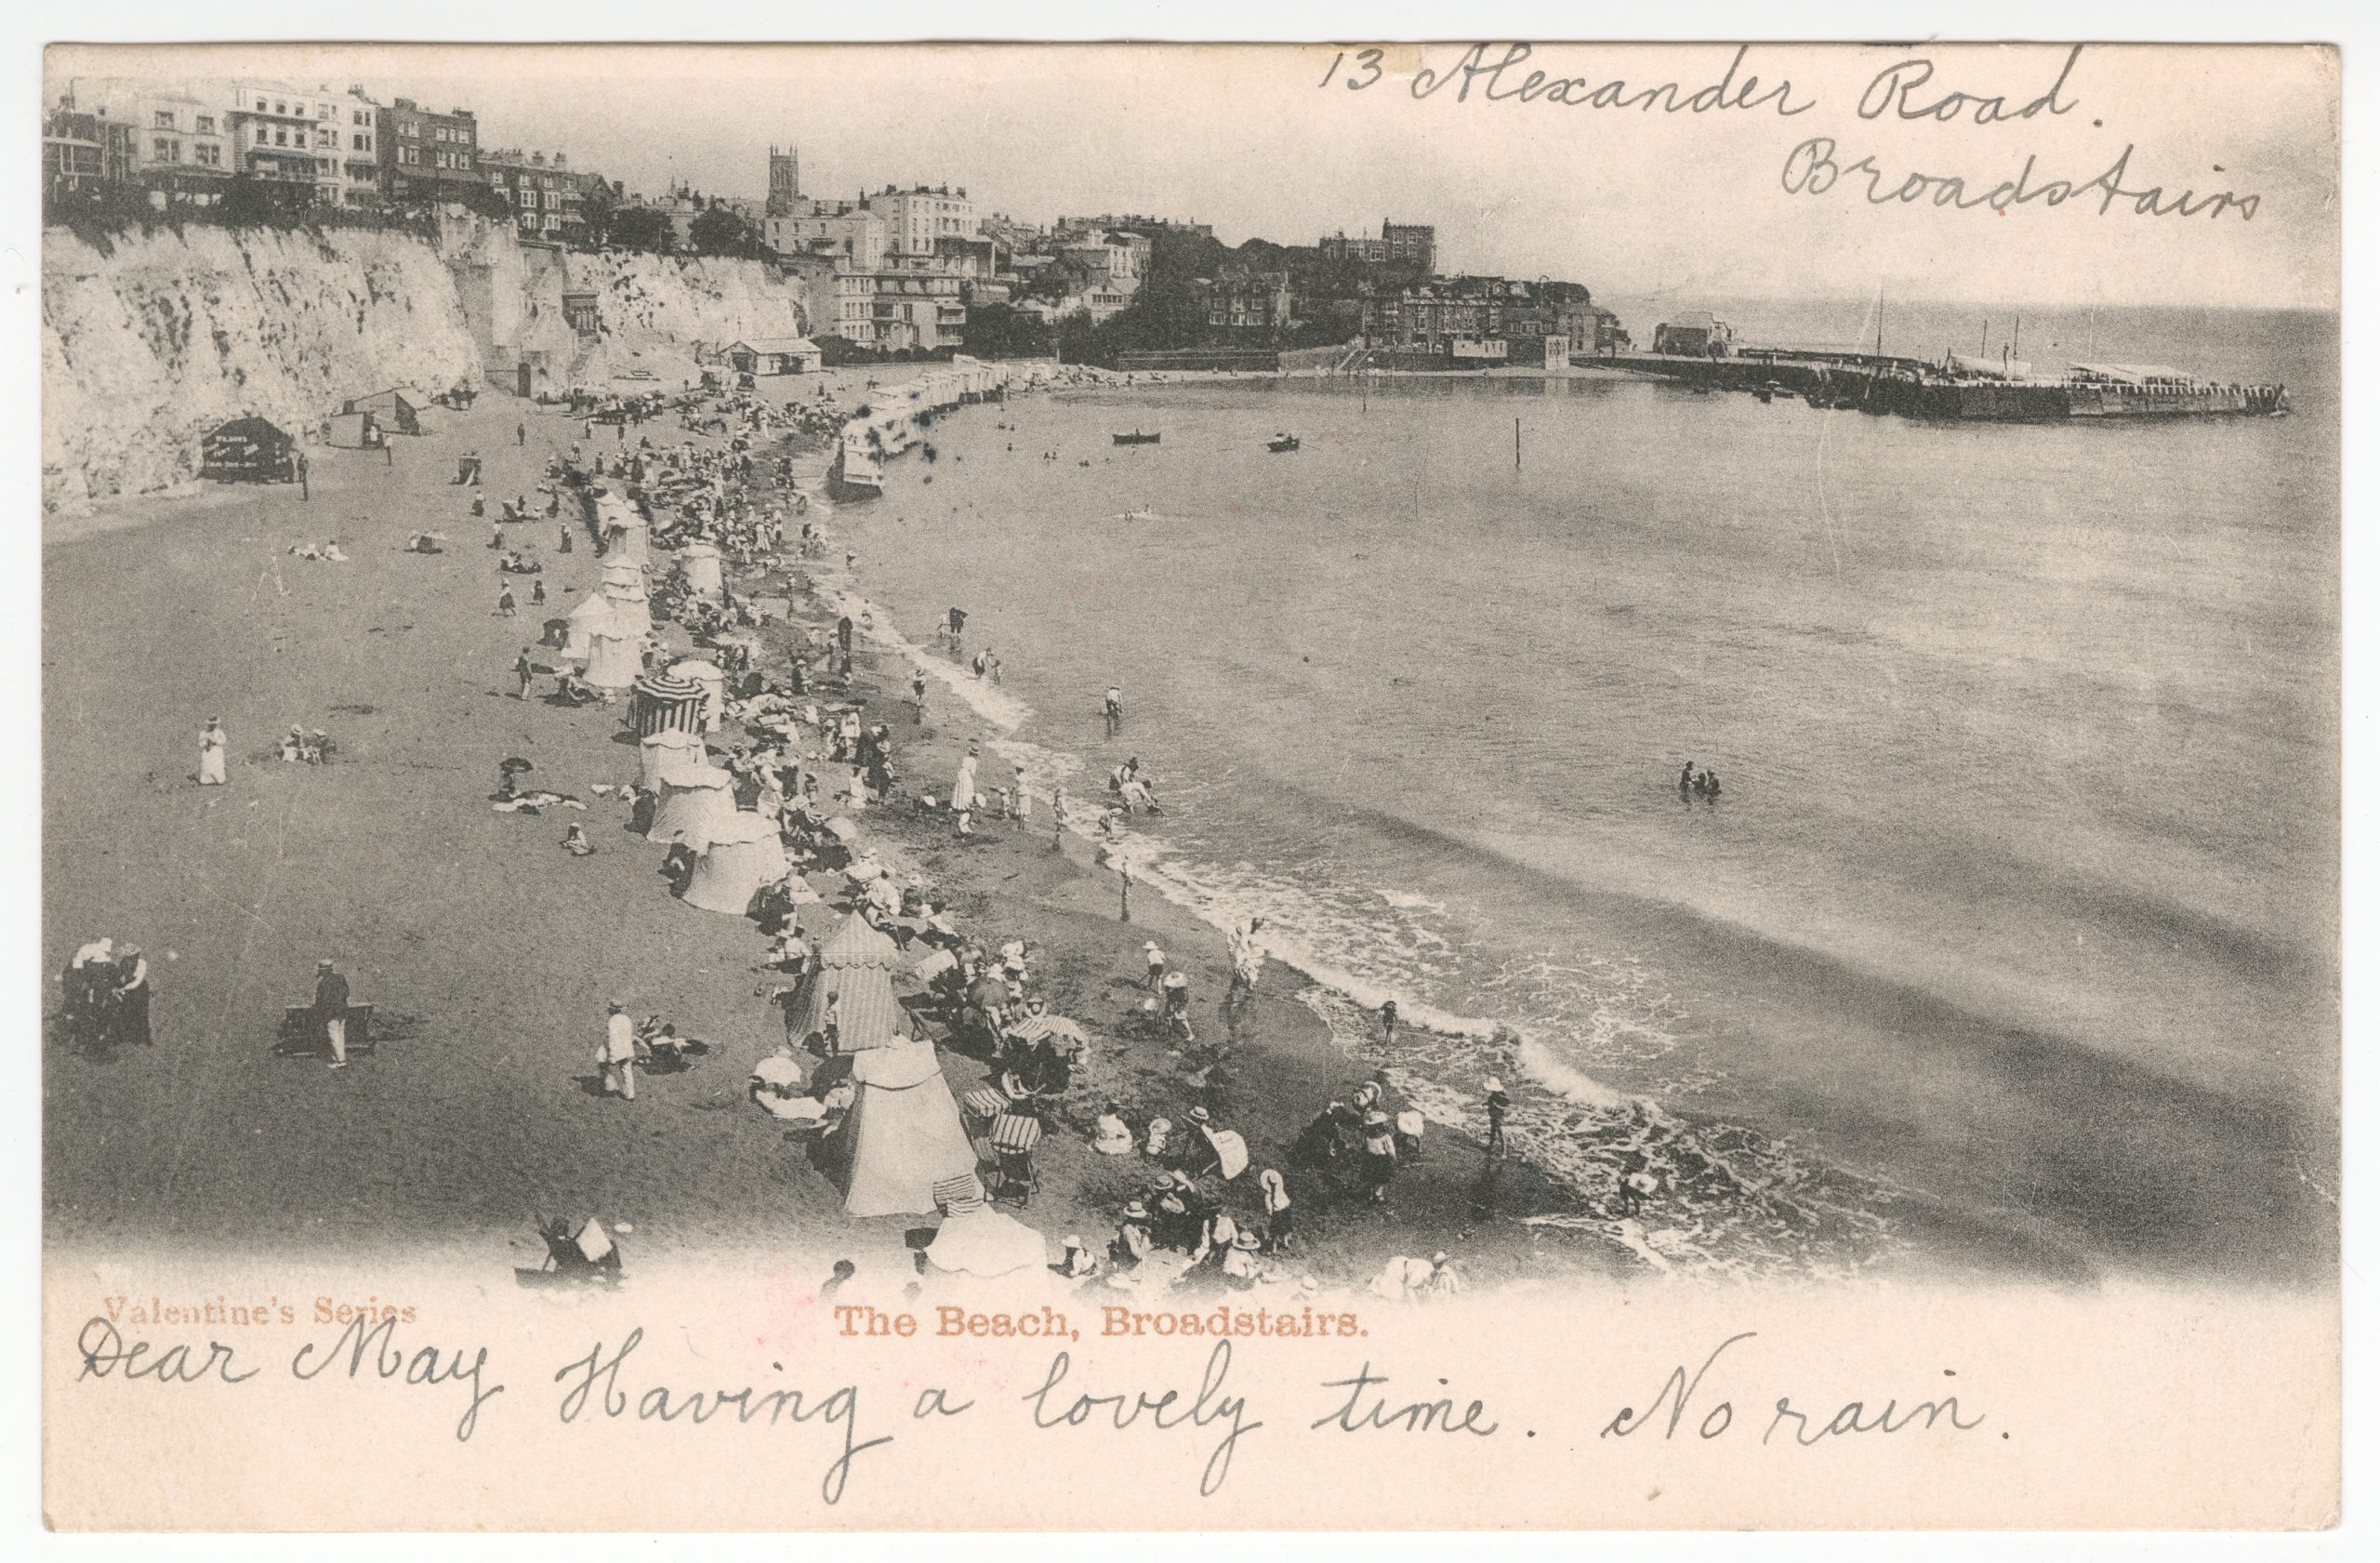 'The Beach, Broadstairs' Postcard, 1903, PH57/33a (item not in exhibition)